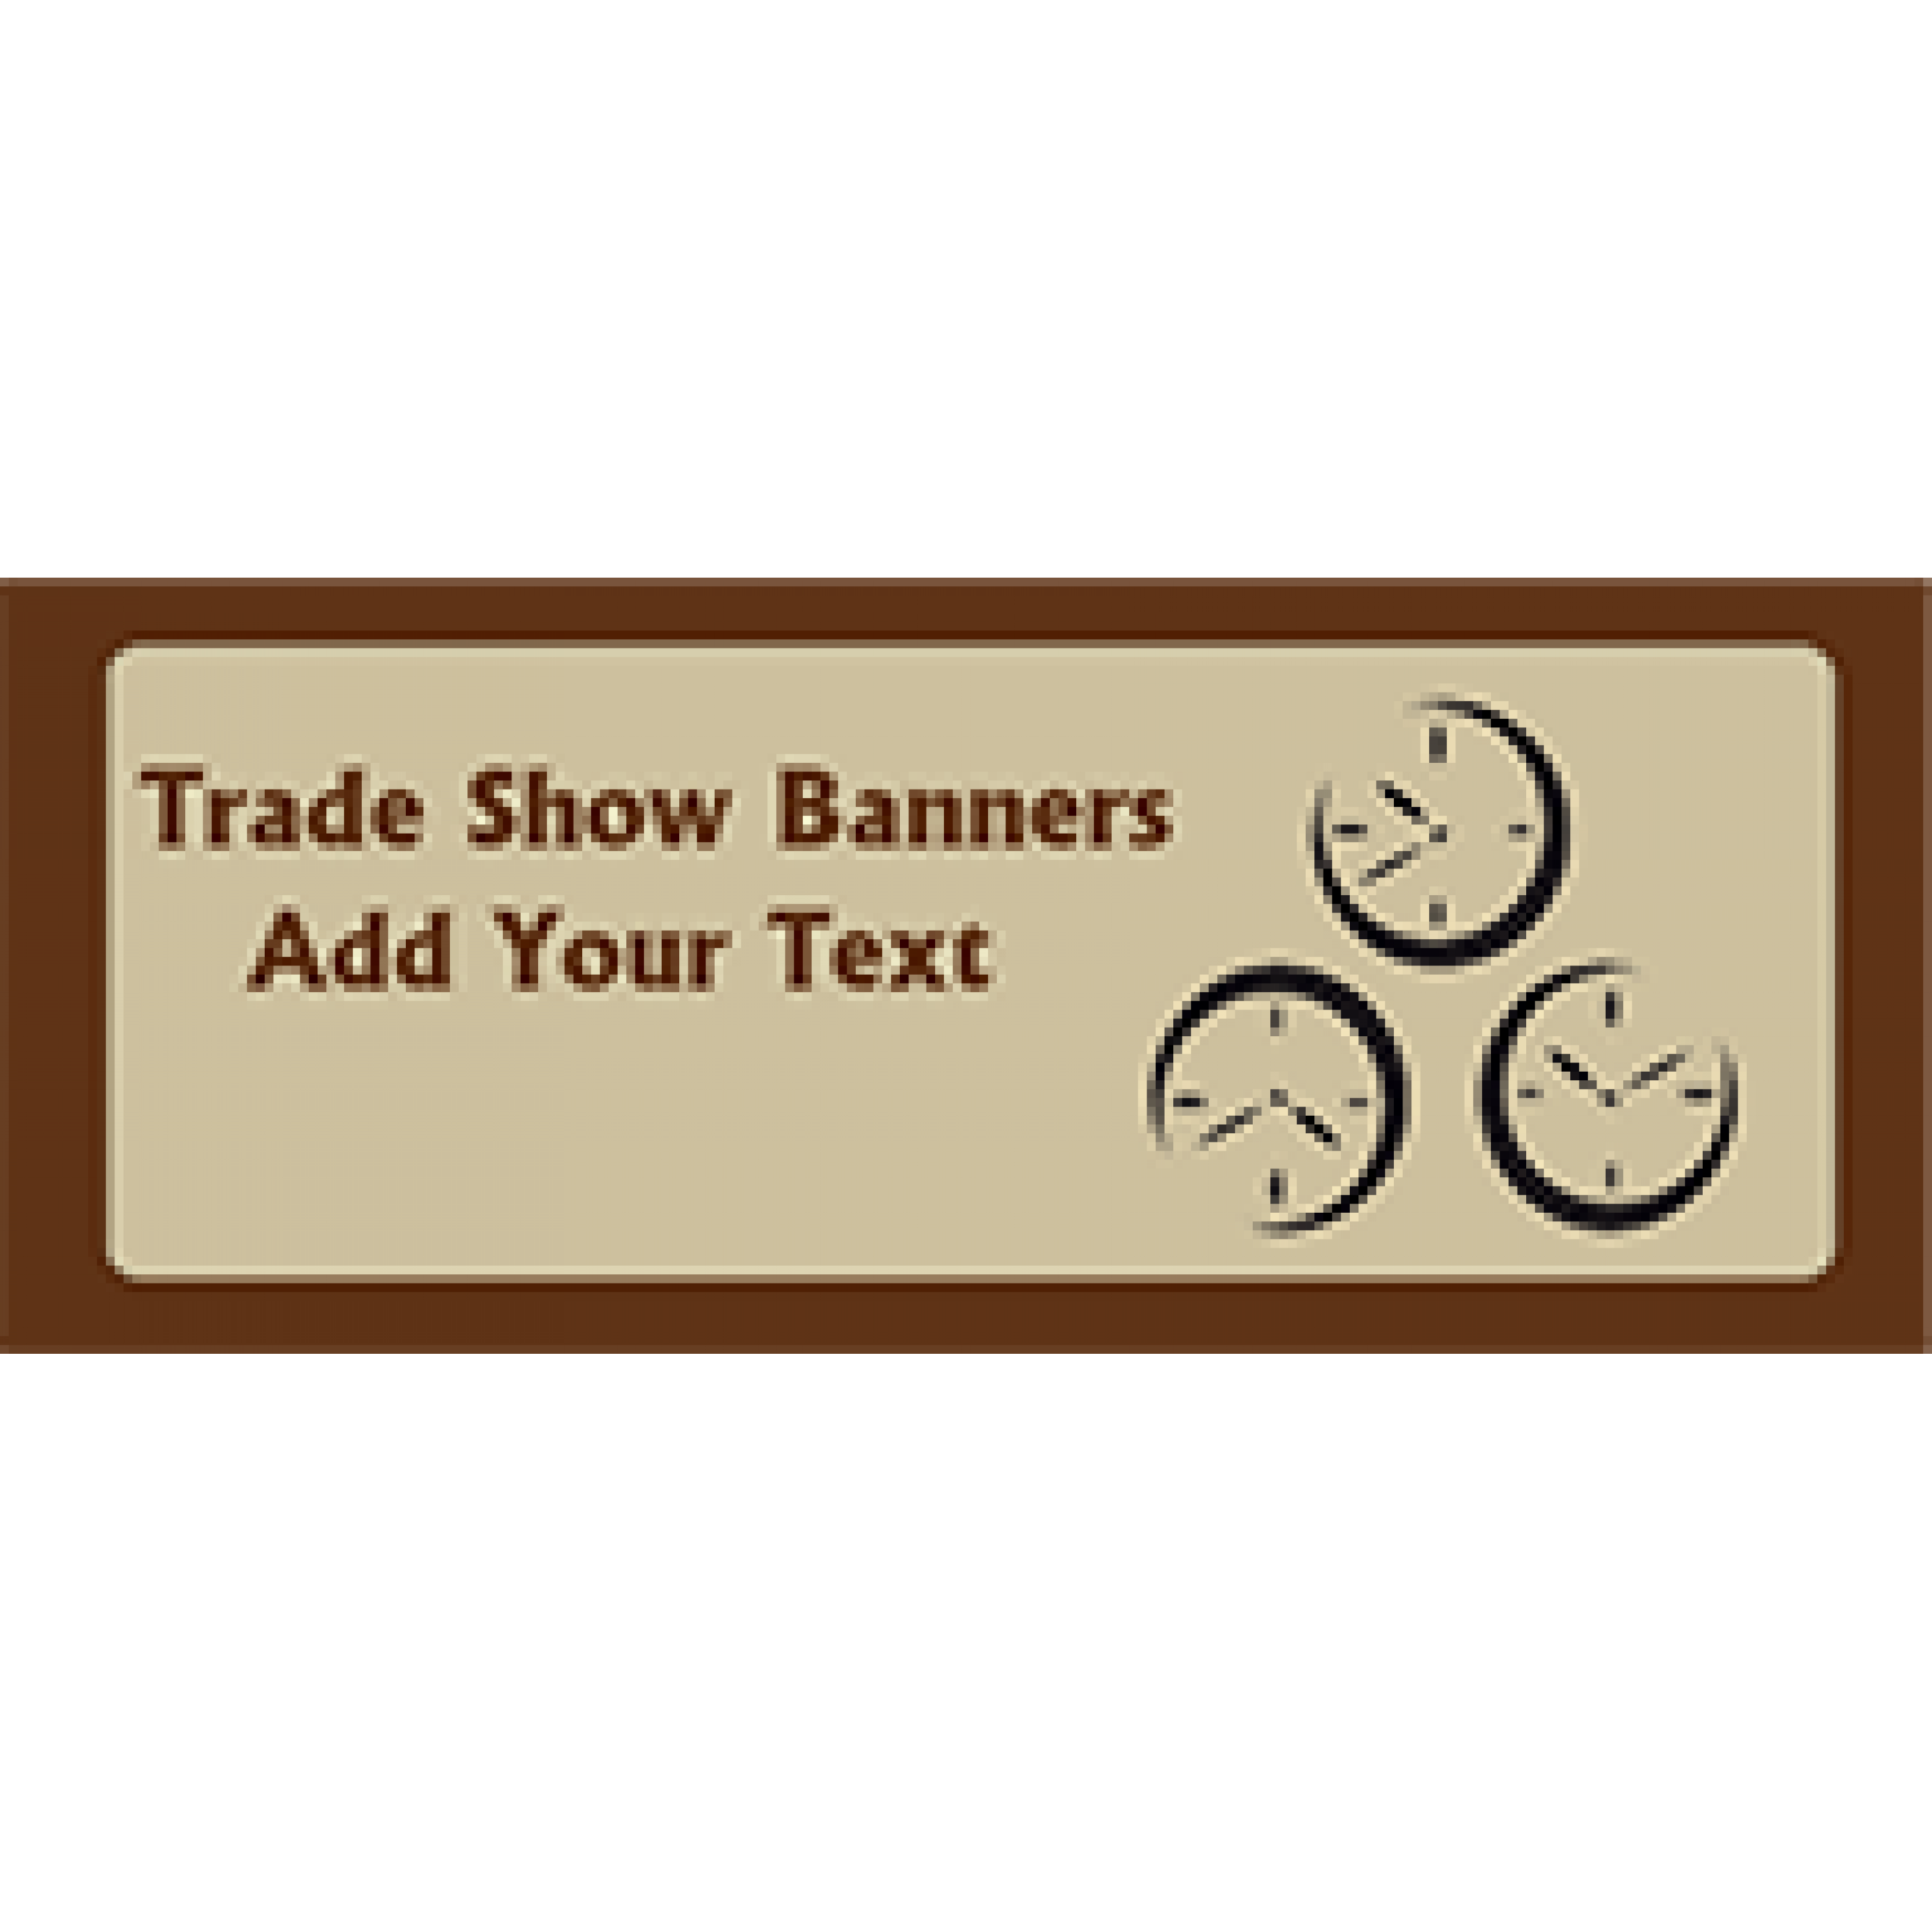 Trade Show Banner 48x120 inches